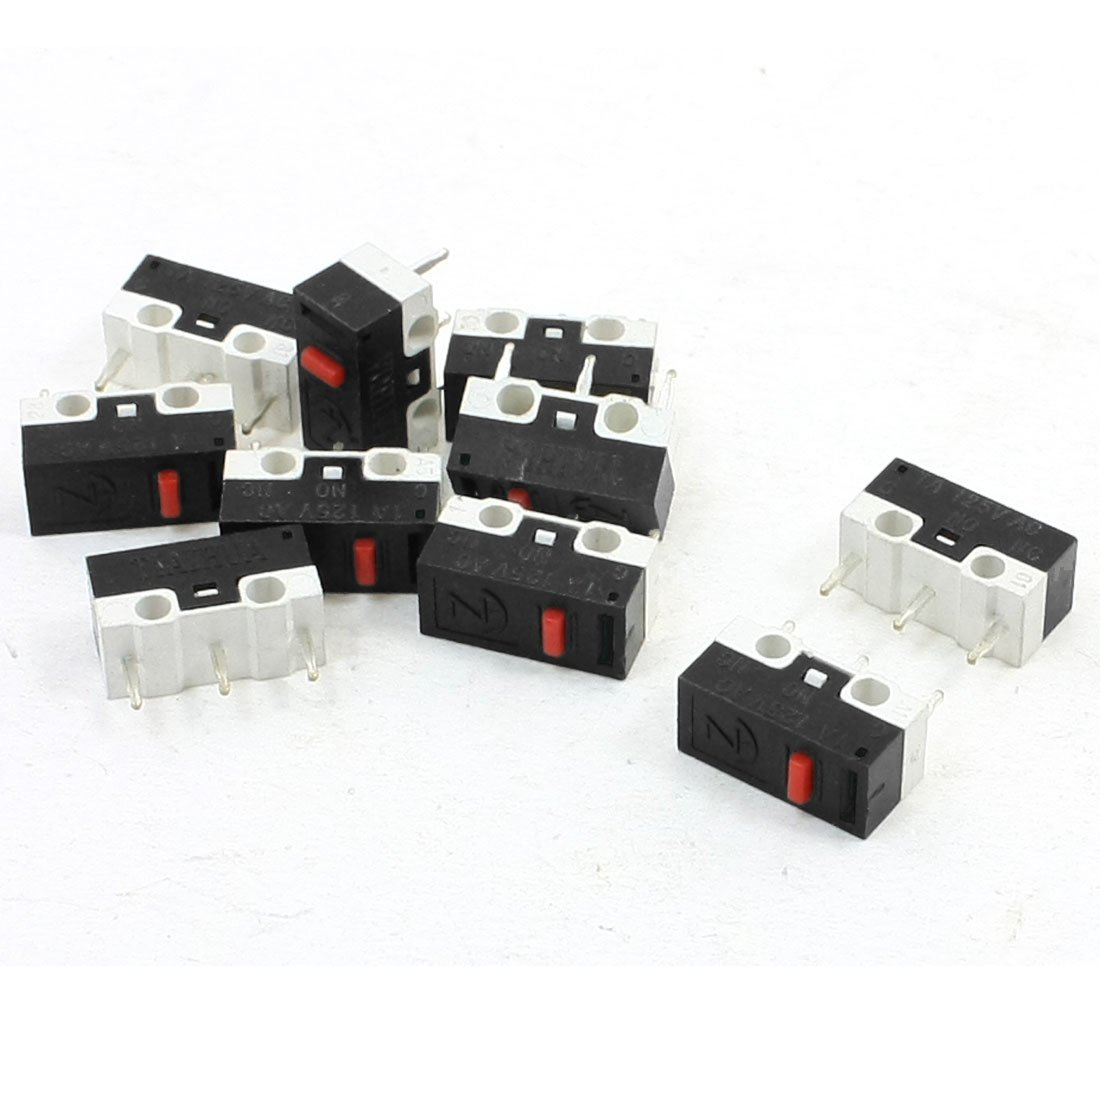 a13112900ux0028 Uxcell Micro Switch 10 Piece UXCE9 Uxcell